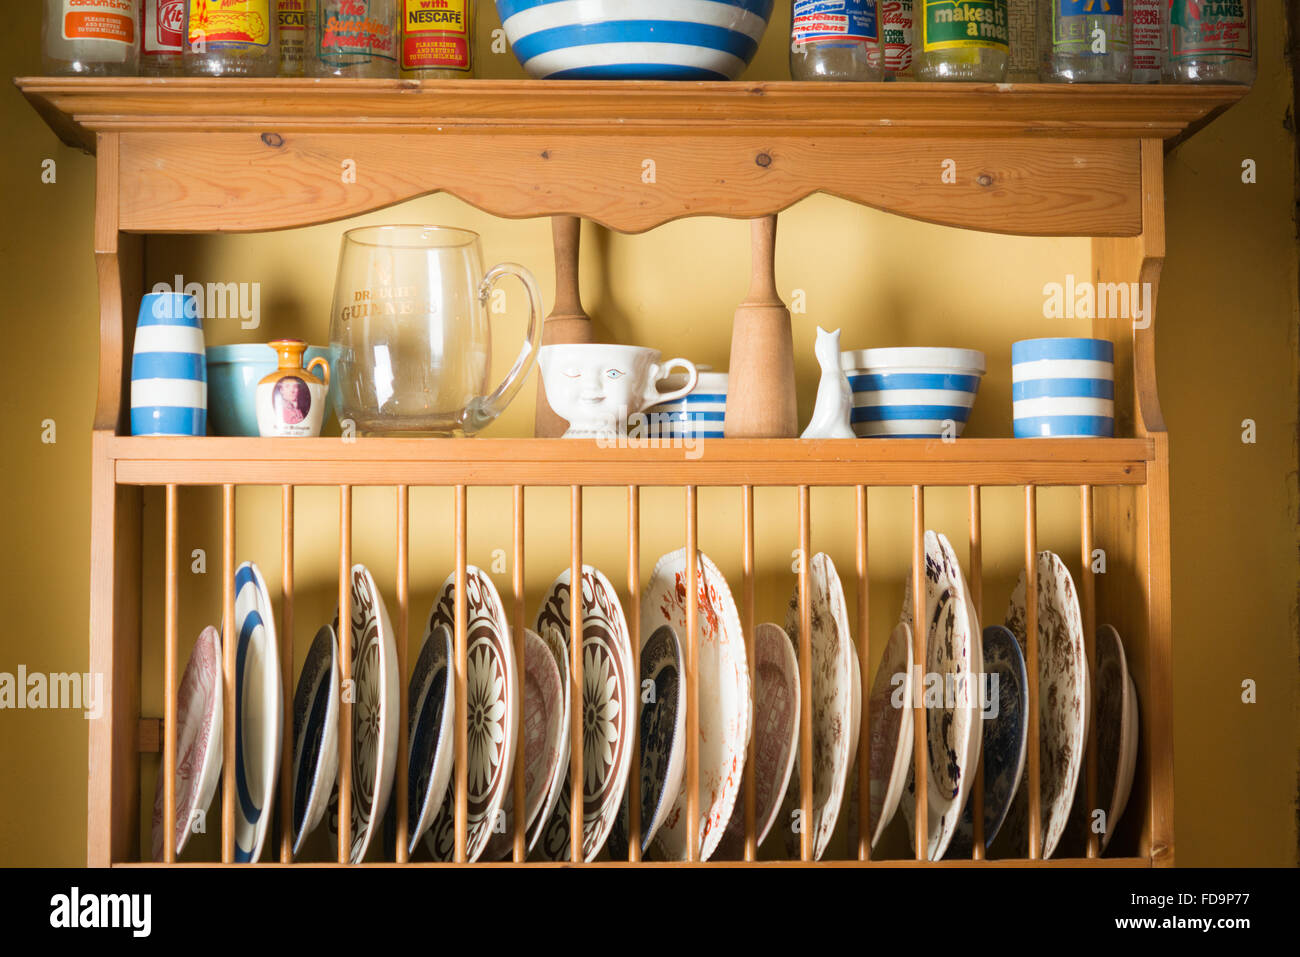 A plate rack or dresser in a dining room or kitchen interior & A plate rack or dresser in a dining room or kitchen interior Stock ...